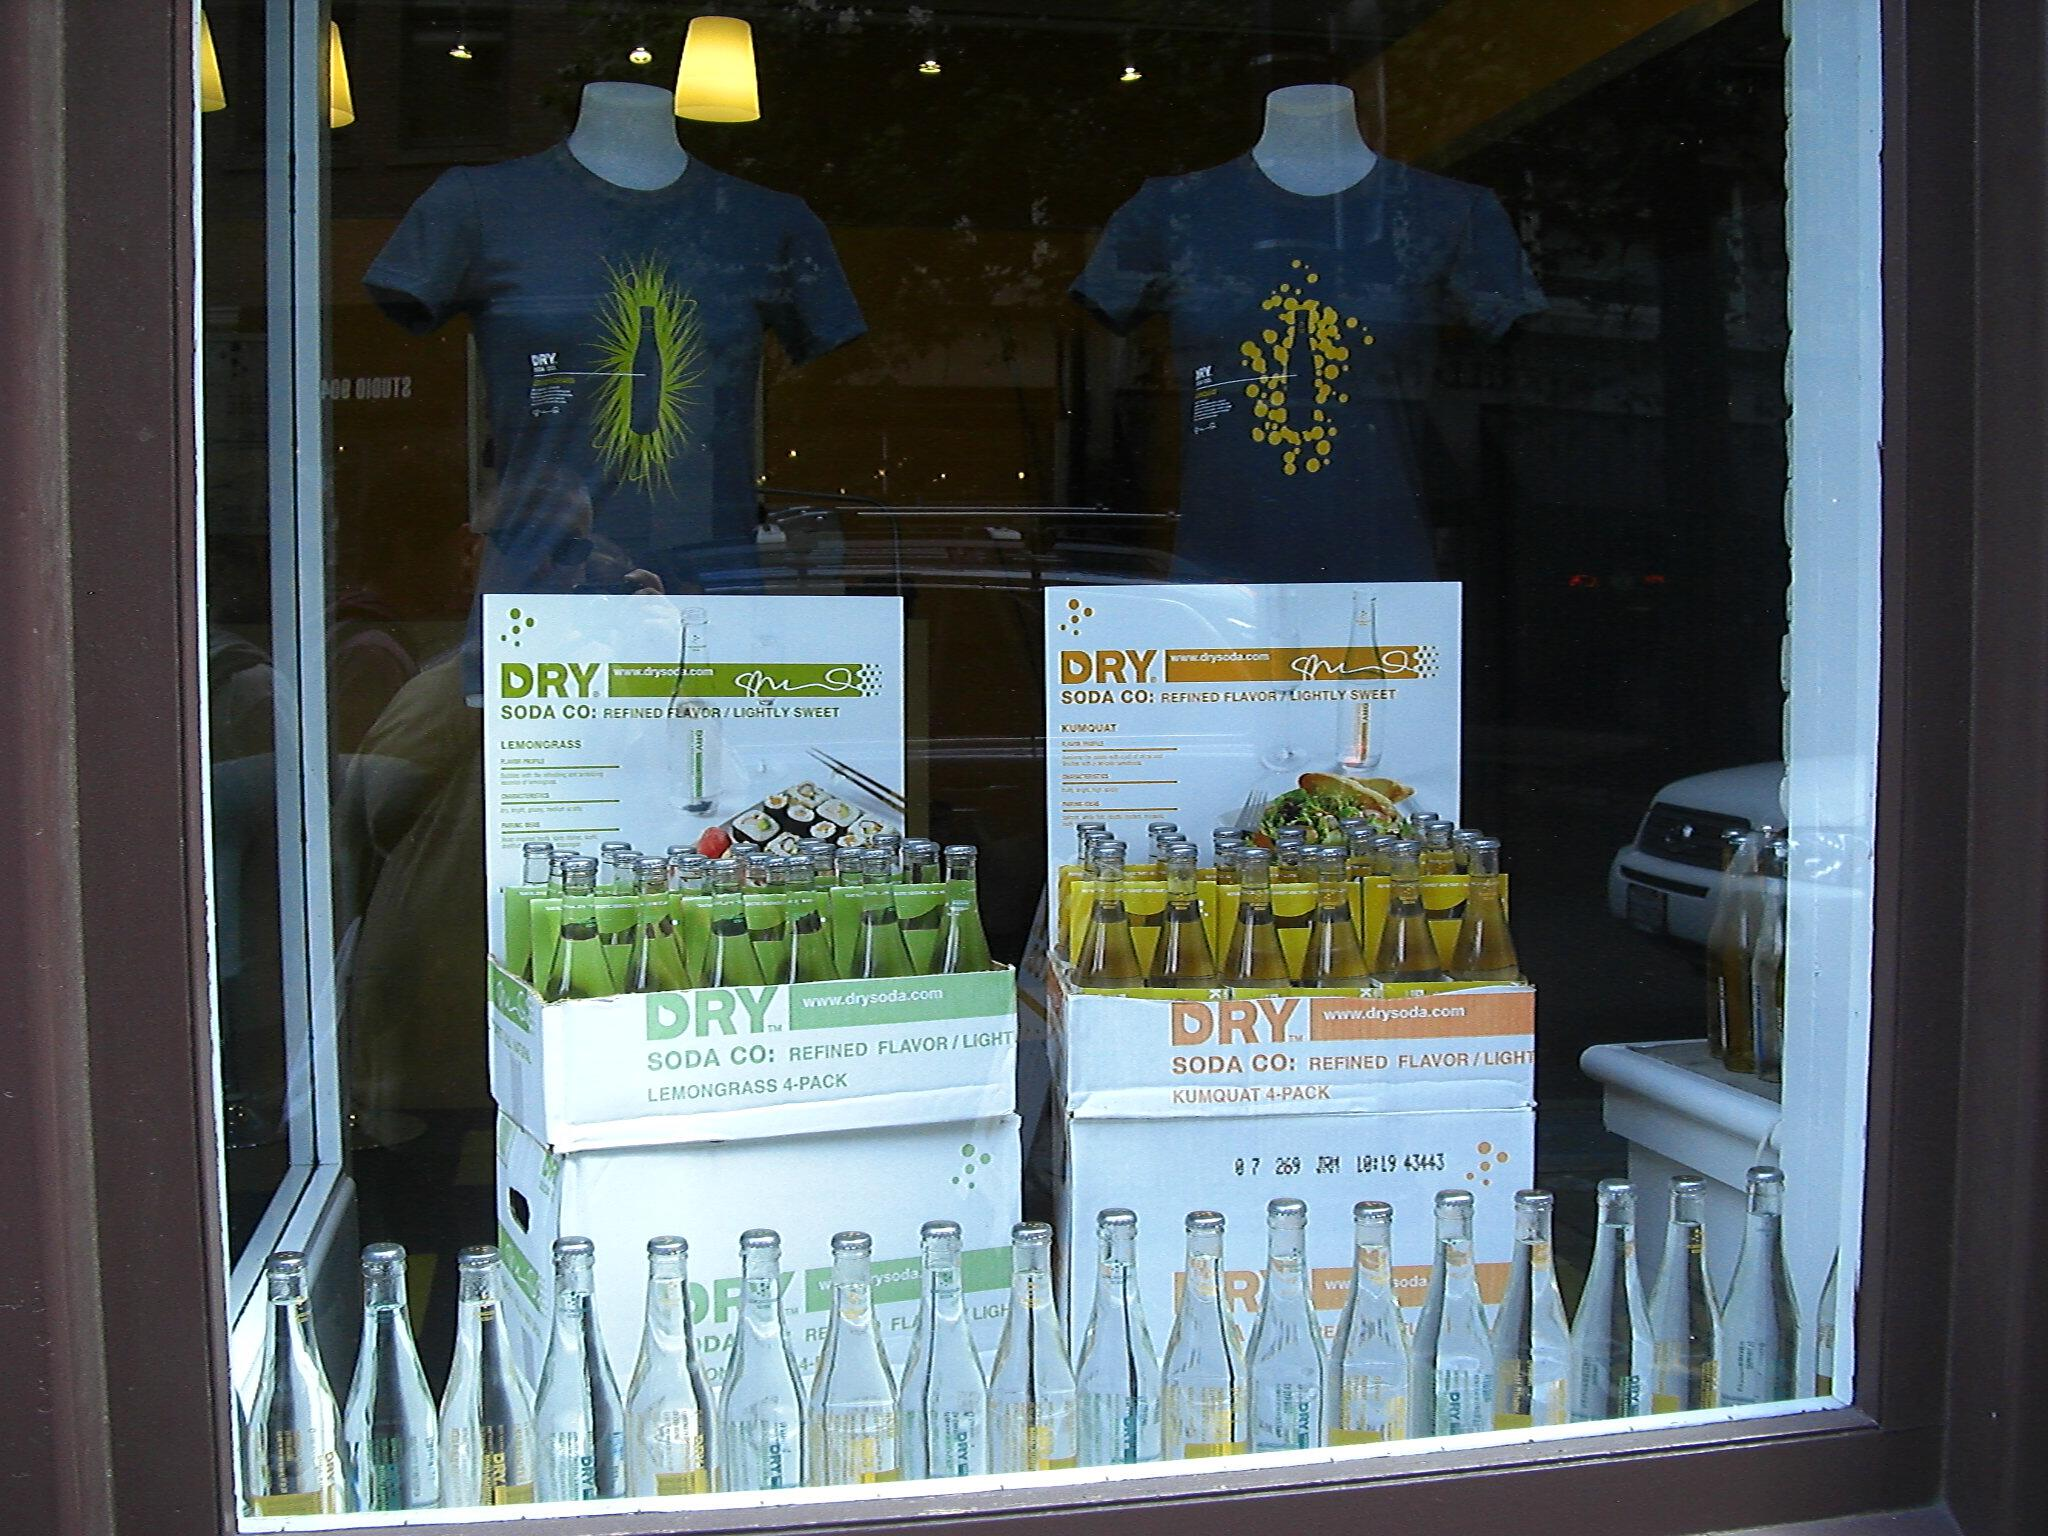 DRY Soda right front window display